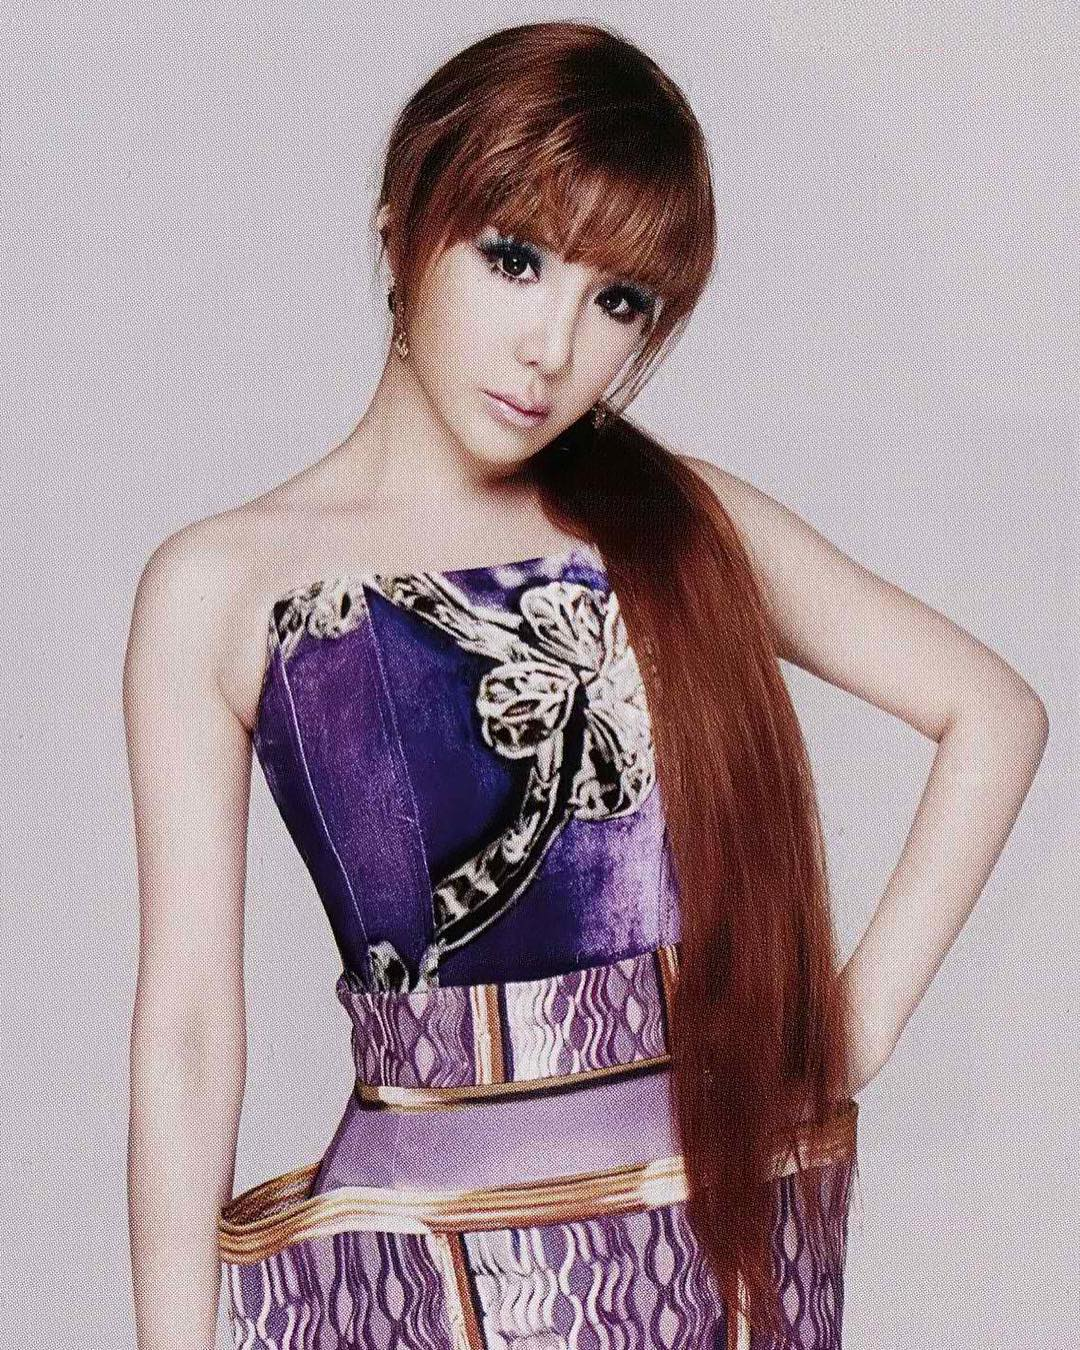 49 Hot Pictures Of Park Bom That Will Burn Your Screen